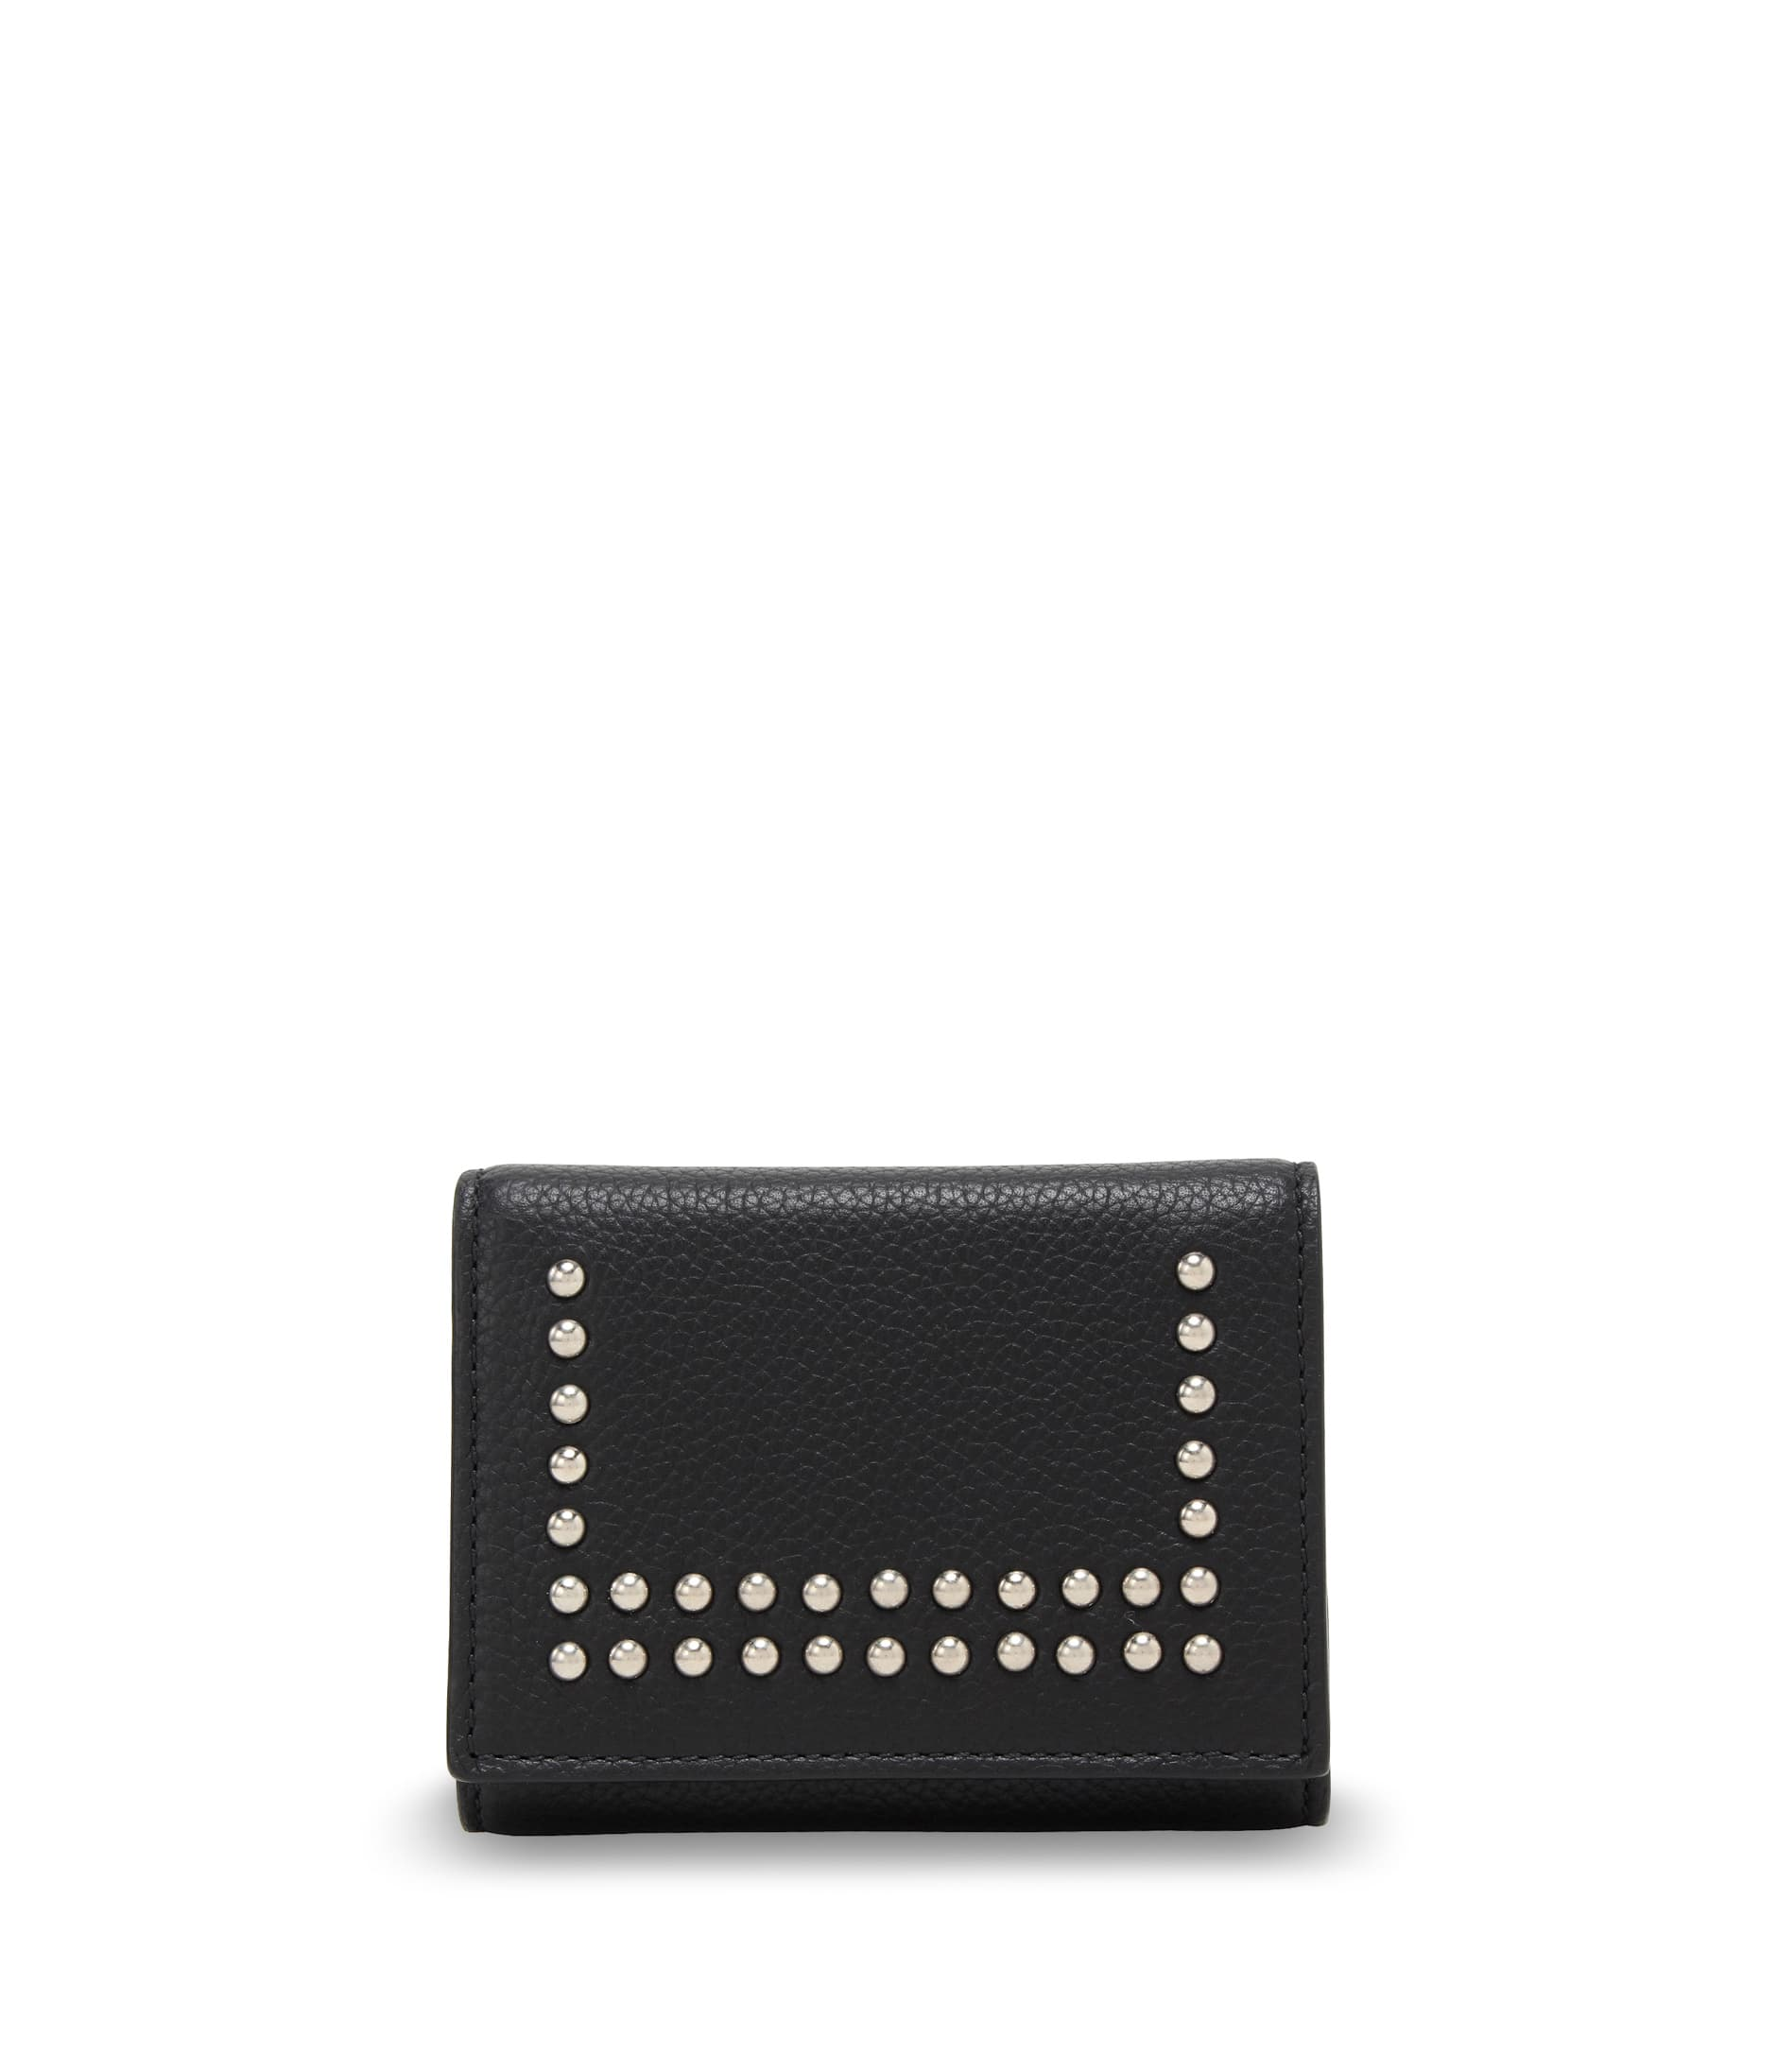 SMALL FOLDED WALLET WITH STUDS 詳細画像 BLACK 1